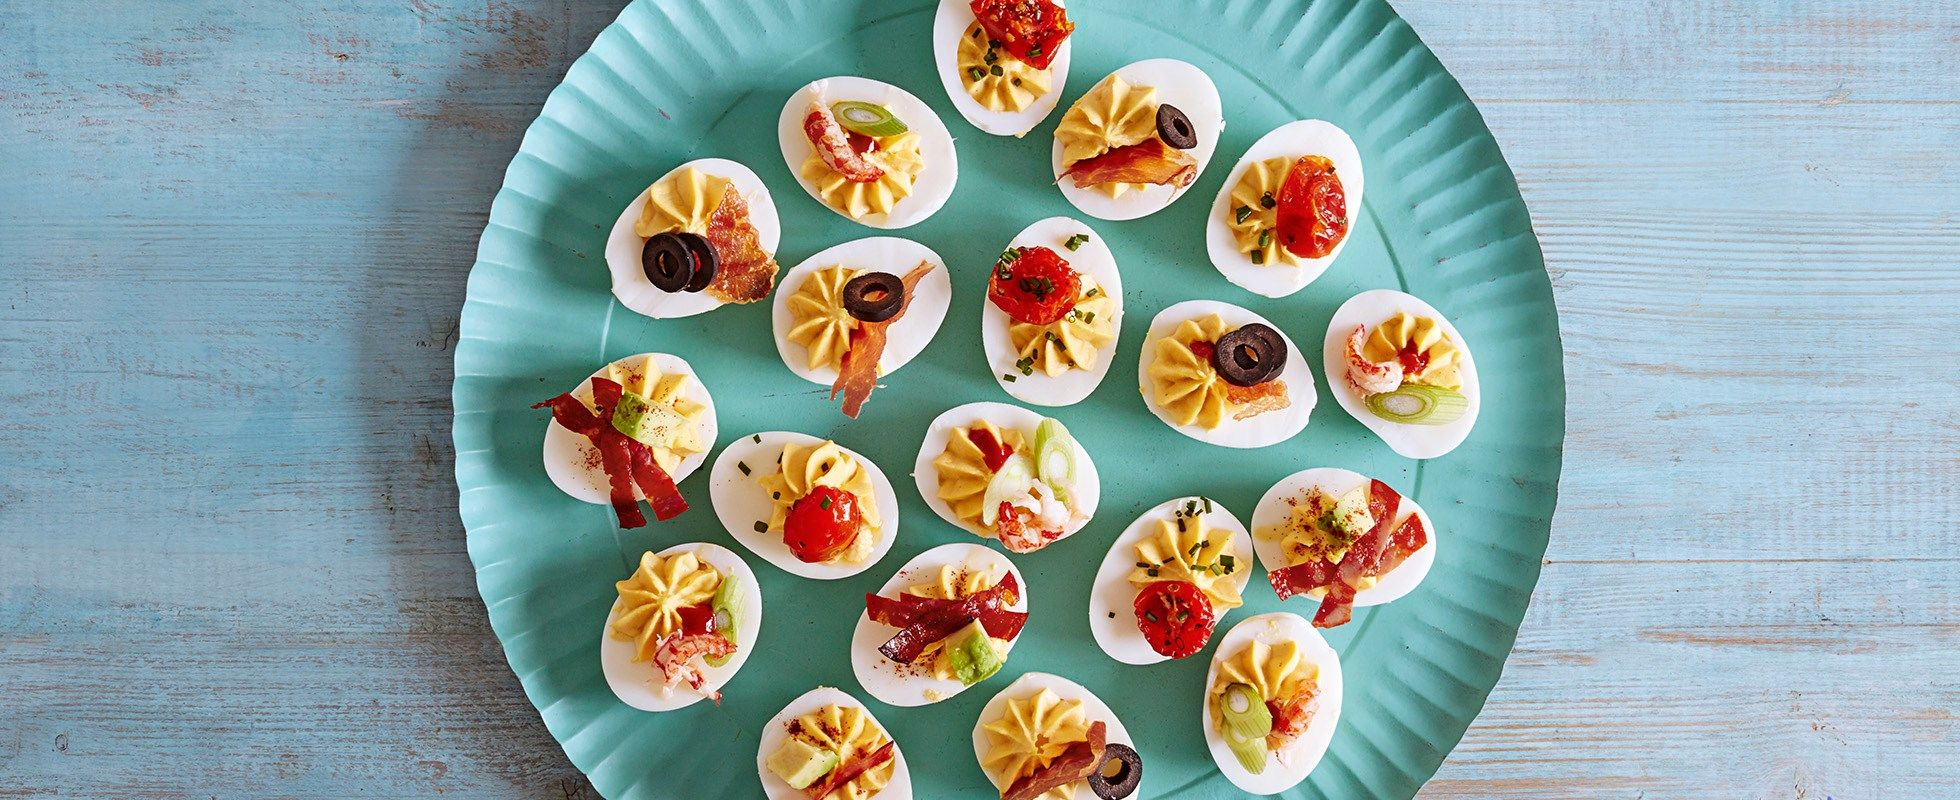 Devilled eggs are a retro nibble that have recently become trendy. The base stays the same, but you can add different toppings depending on what you fancy.